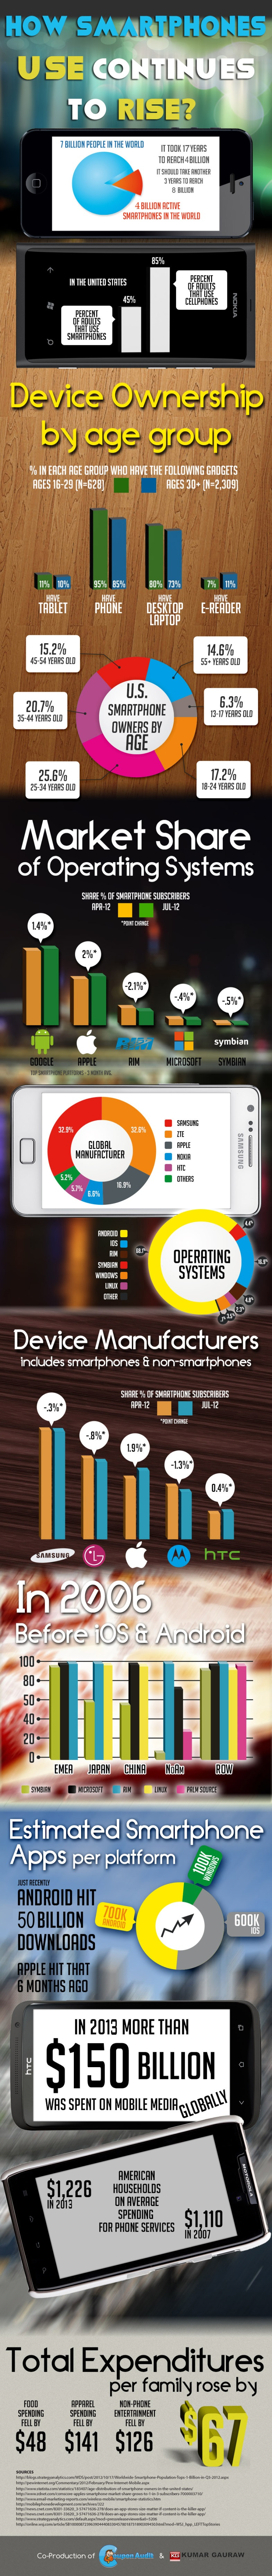 How-Smartphones-Use-Continues-To-Rise - An infographic by CouponAudit and Kumar Gauraw